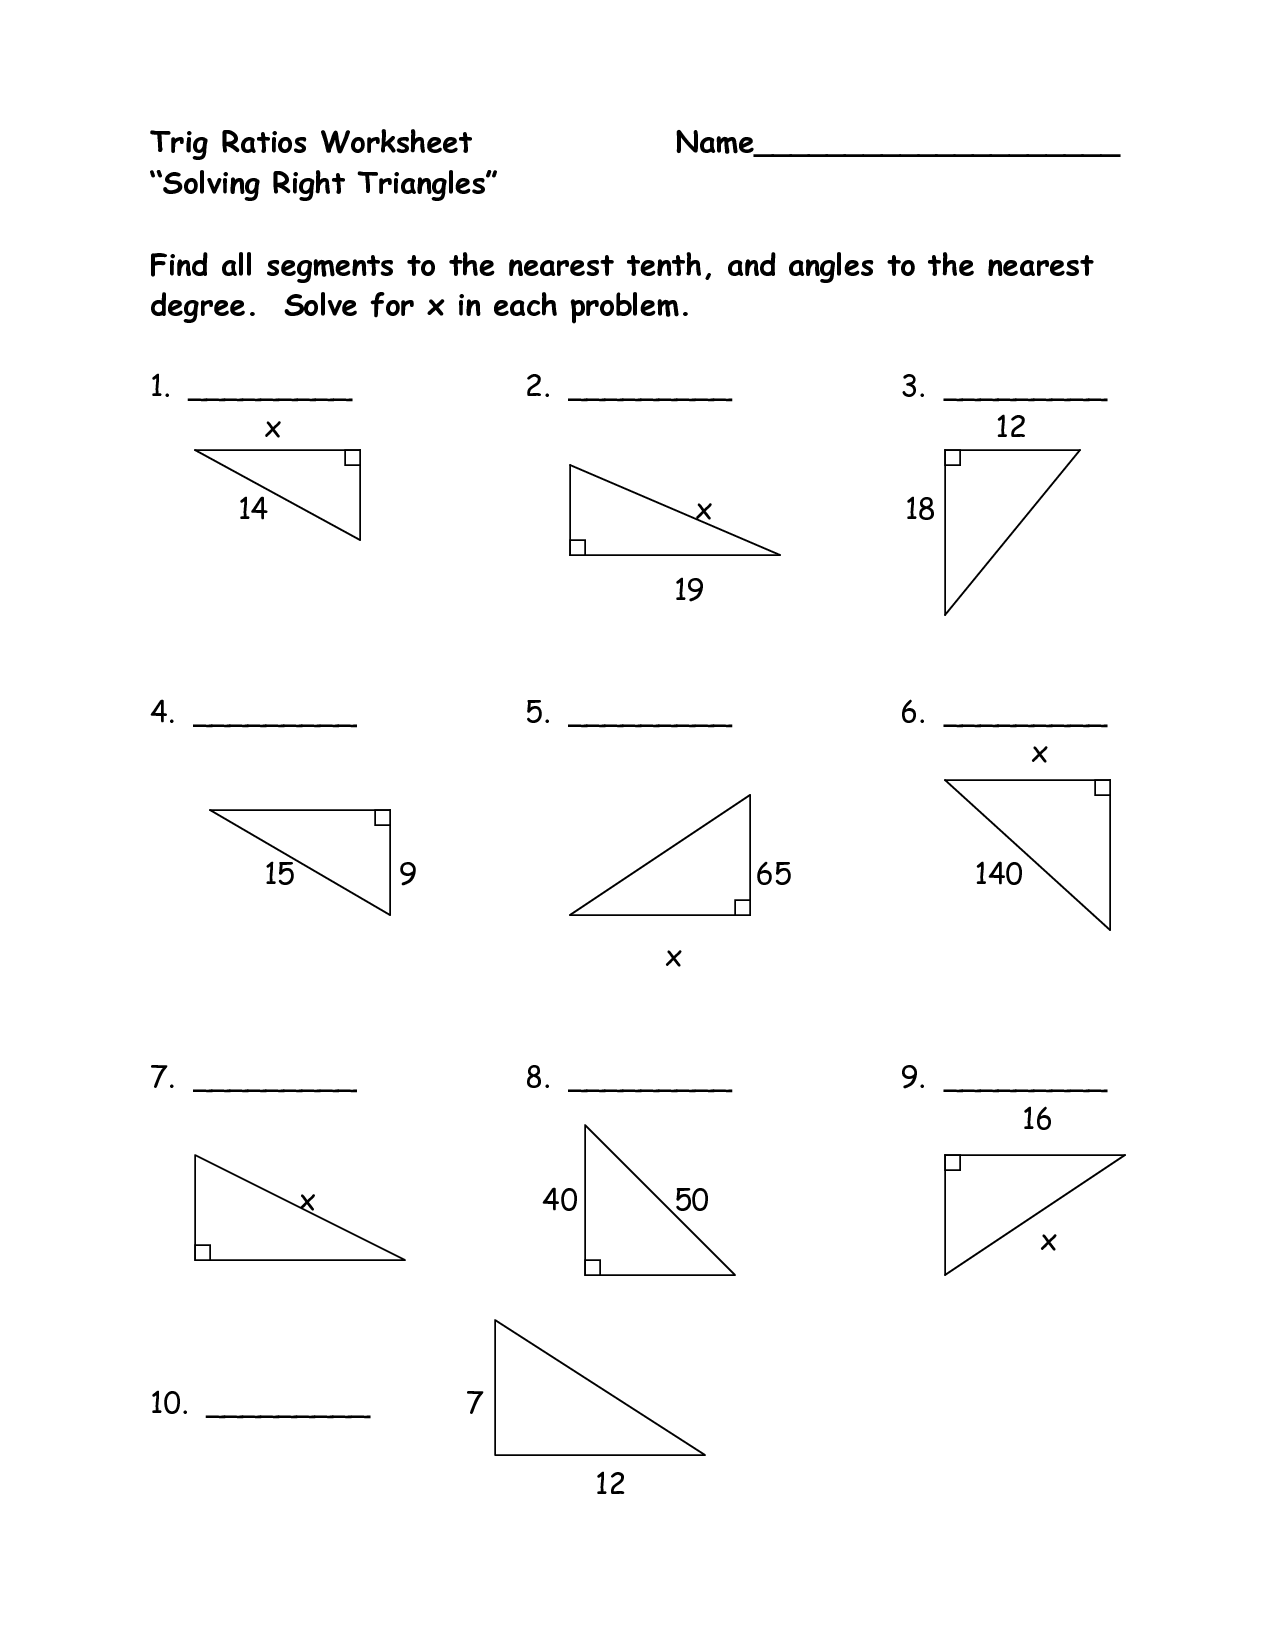 Solving Right Triangles Worksheet Answers Free Printable